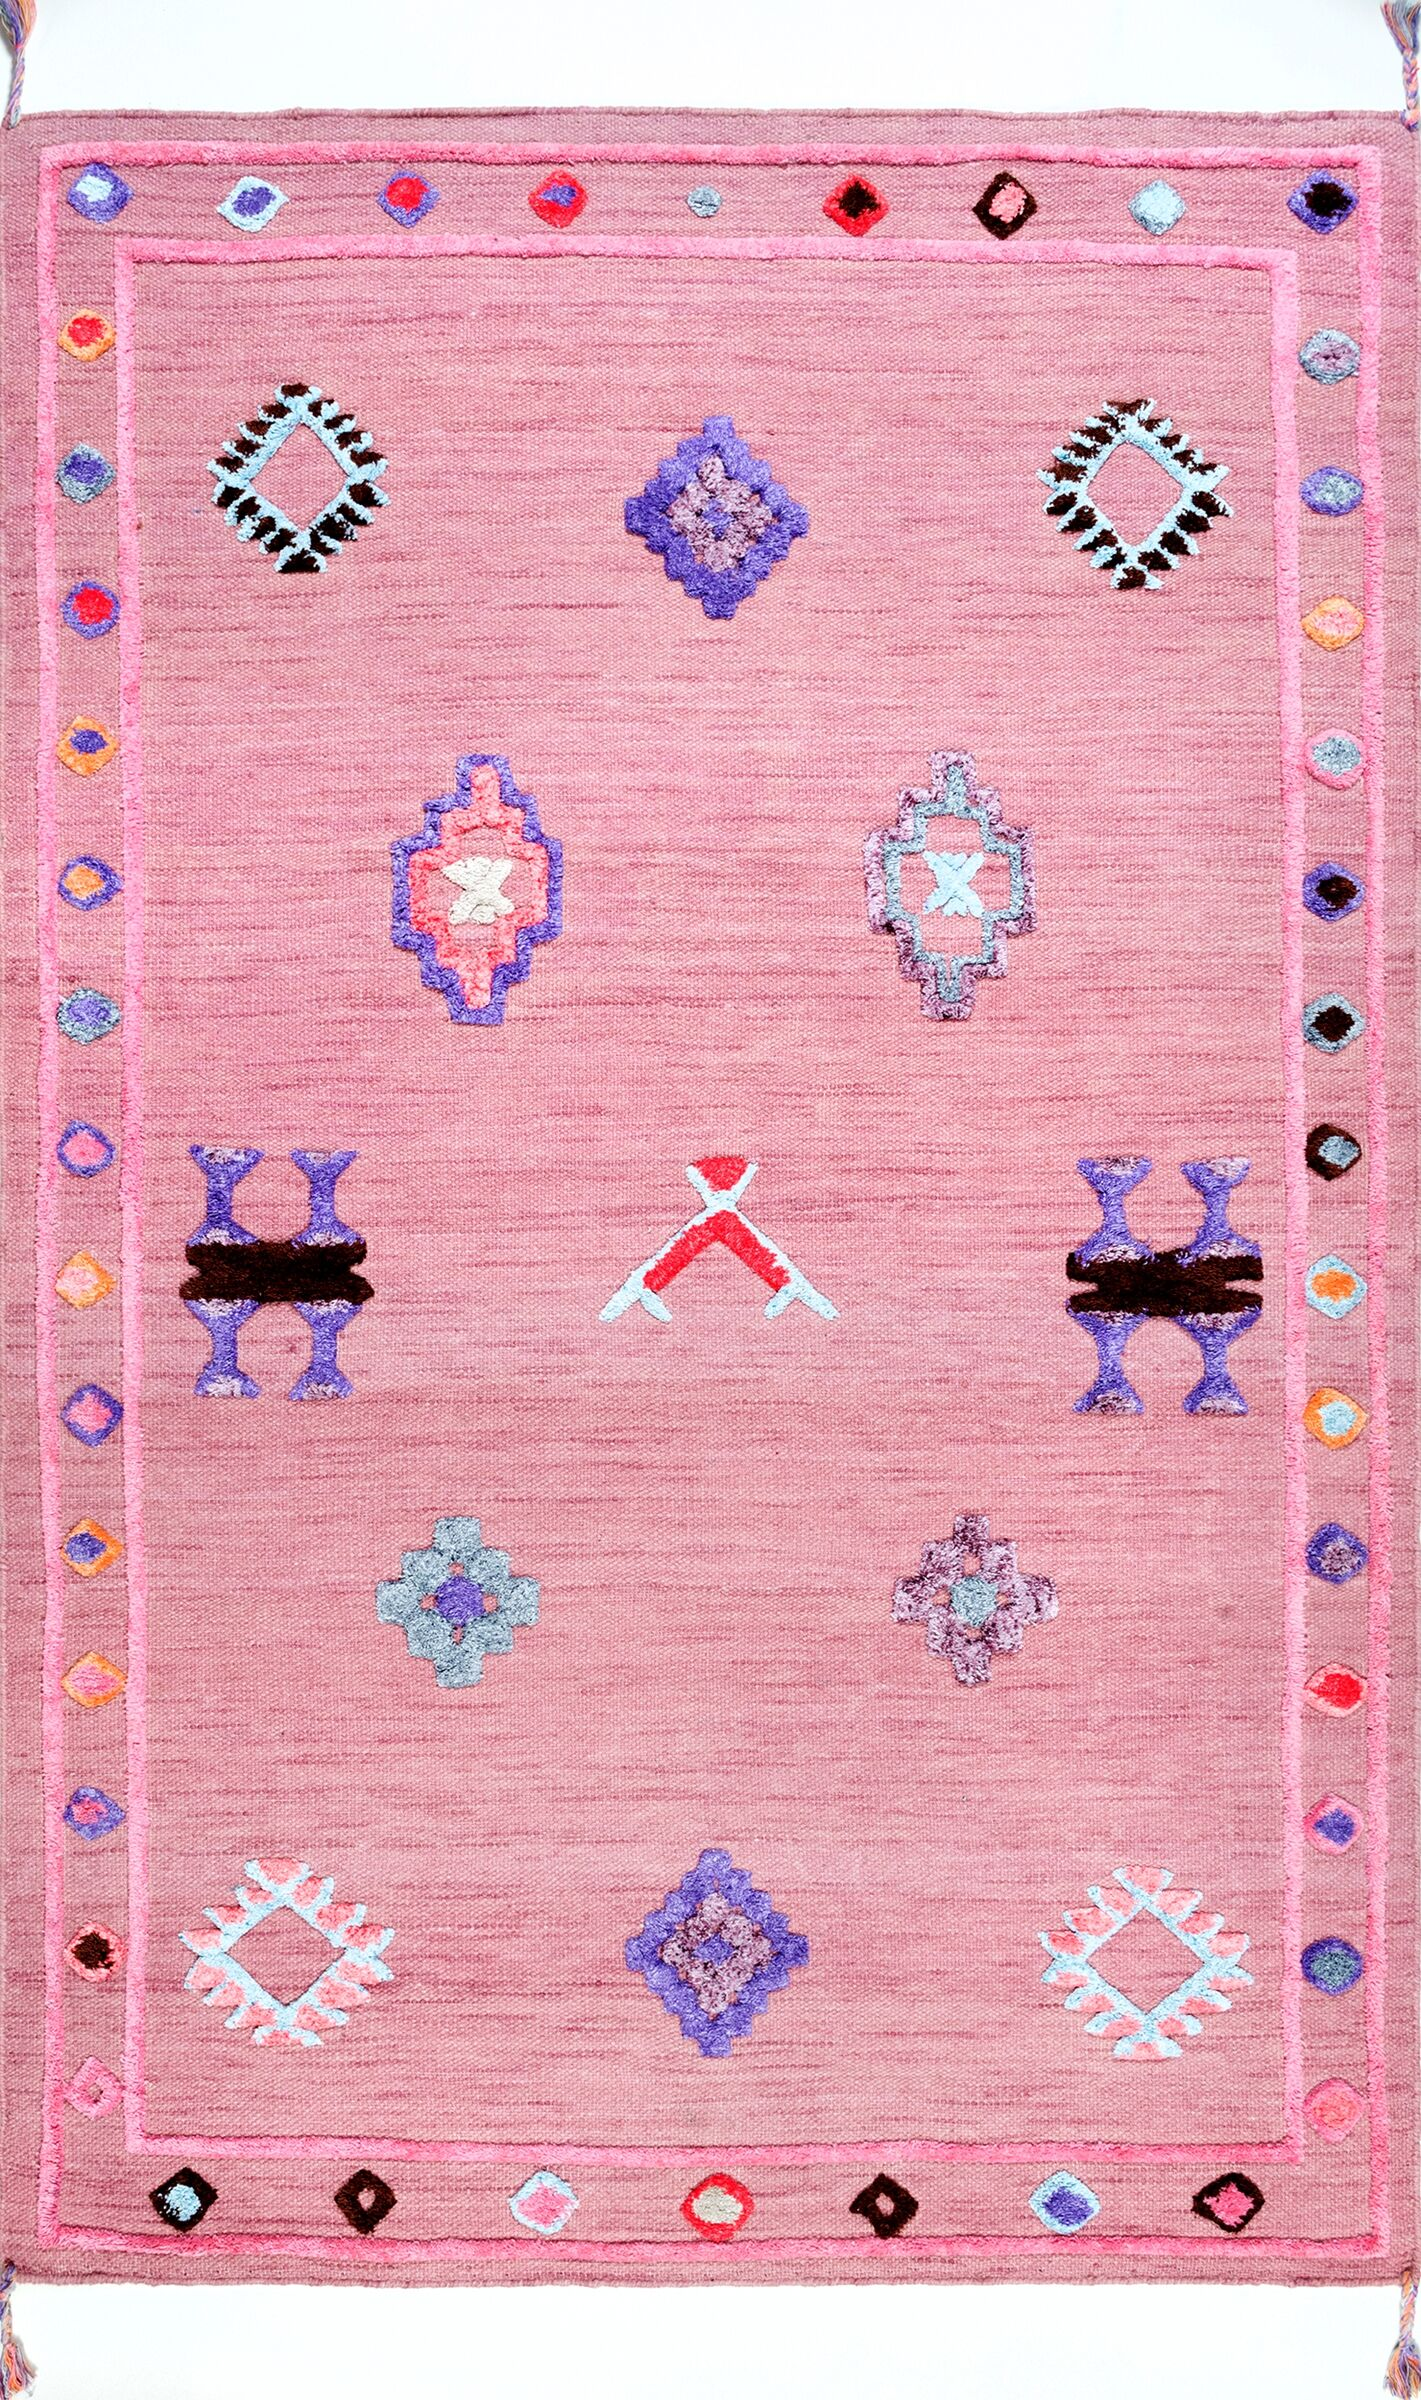 Chacon Hand-Tufted Pink Area Rug Rug Size: Rectangle 4' x 6'